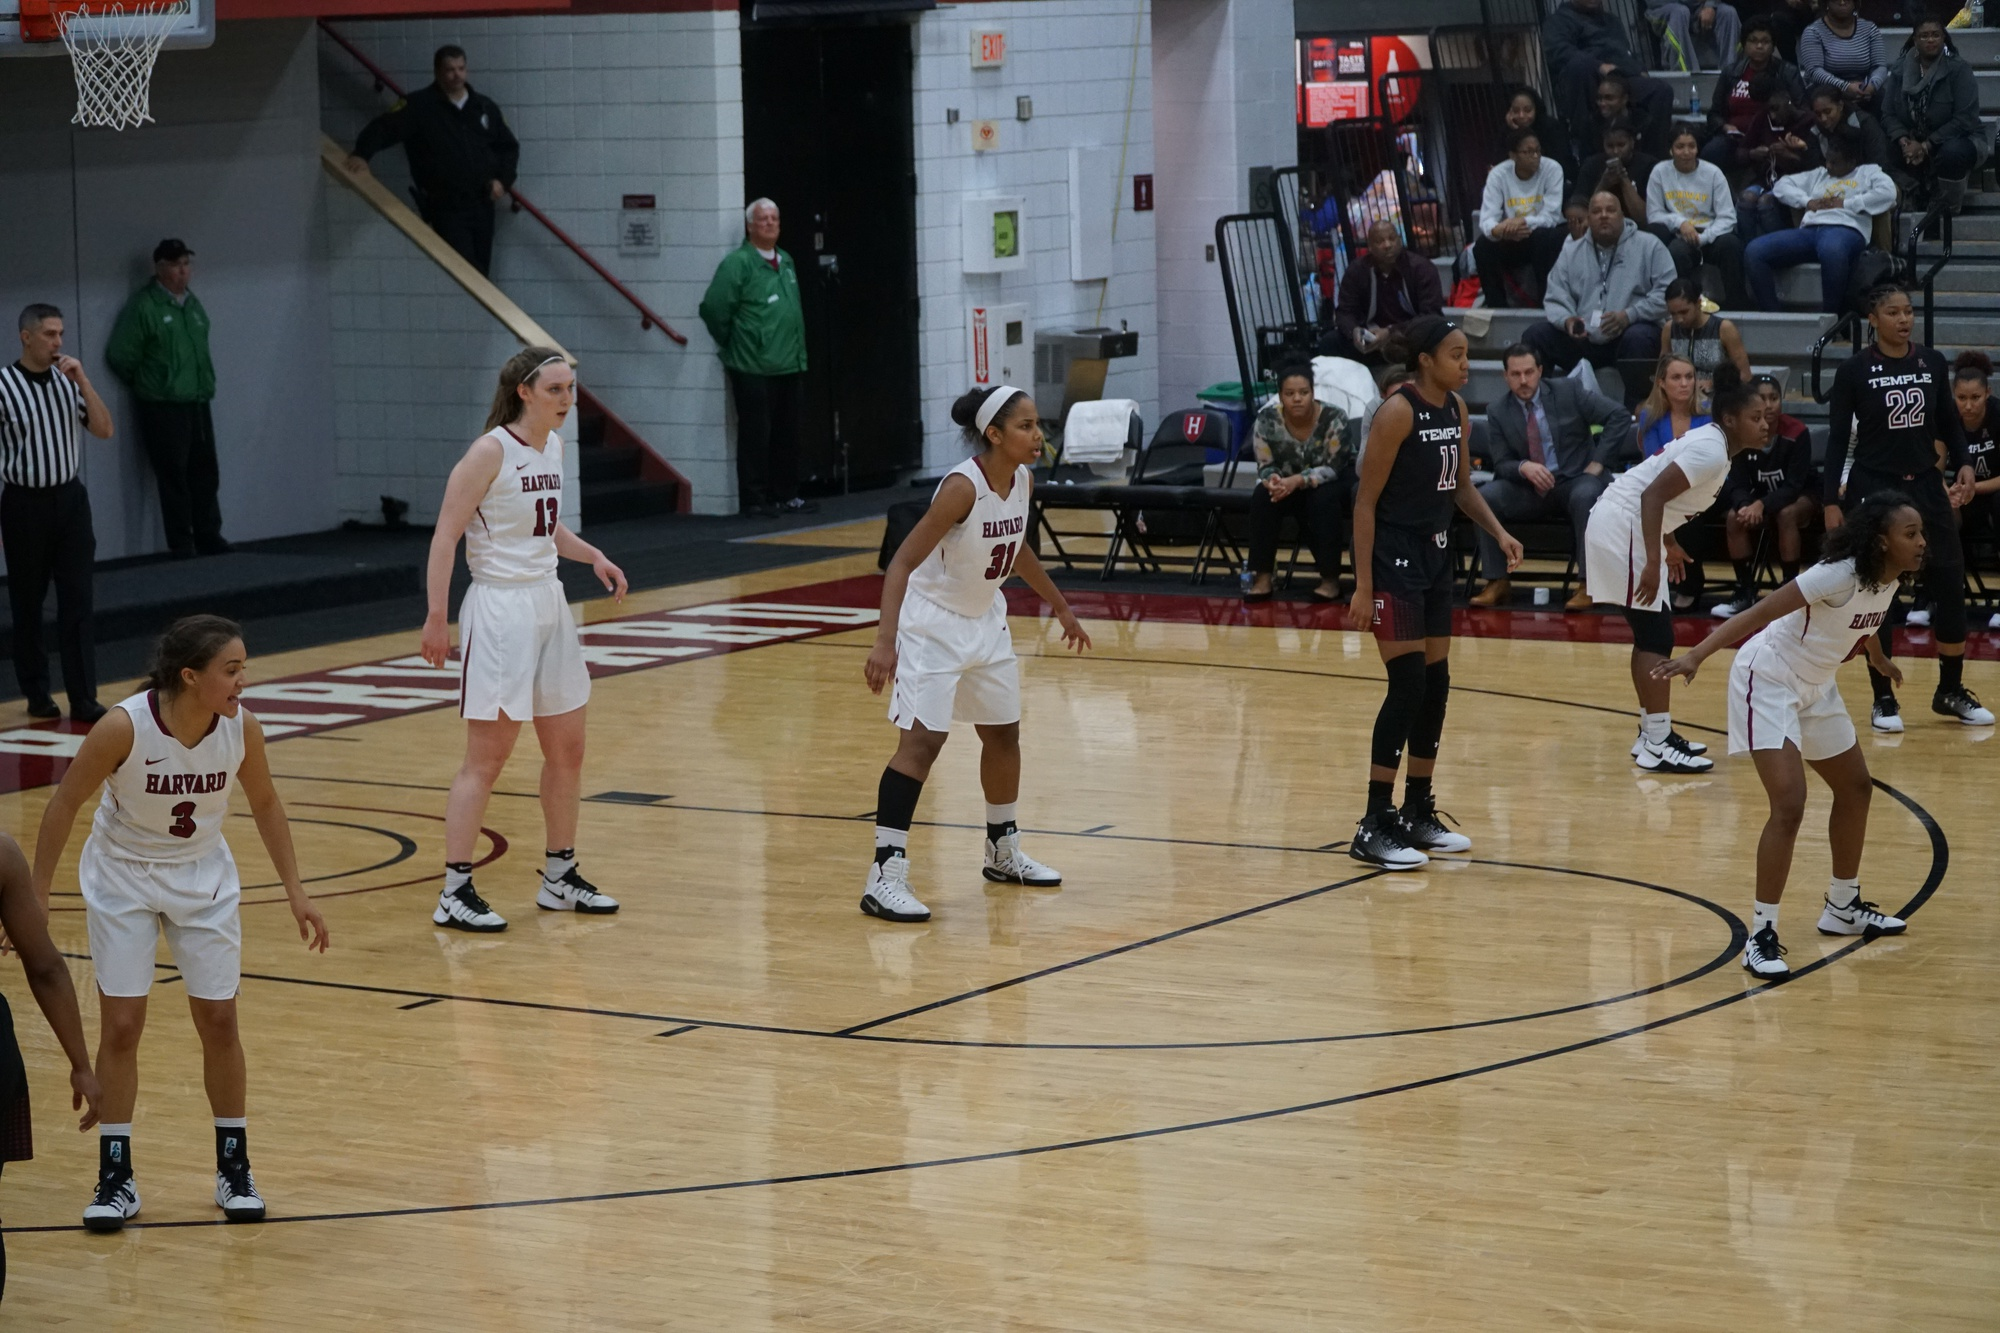 Despite a 14-1 record, the Harvard women's basketball team has received little recognition from the national media.